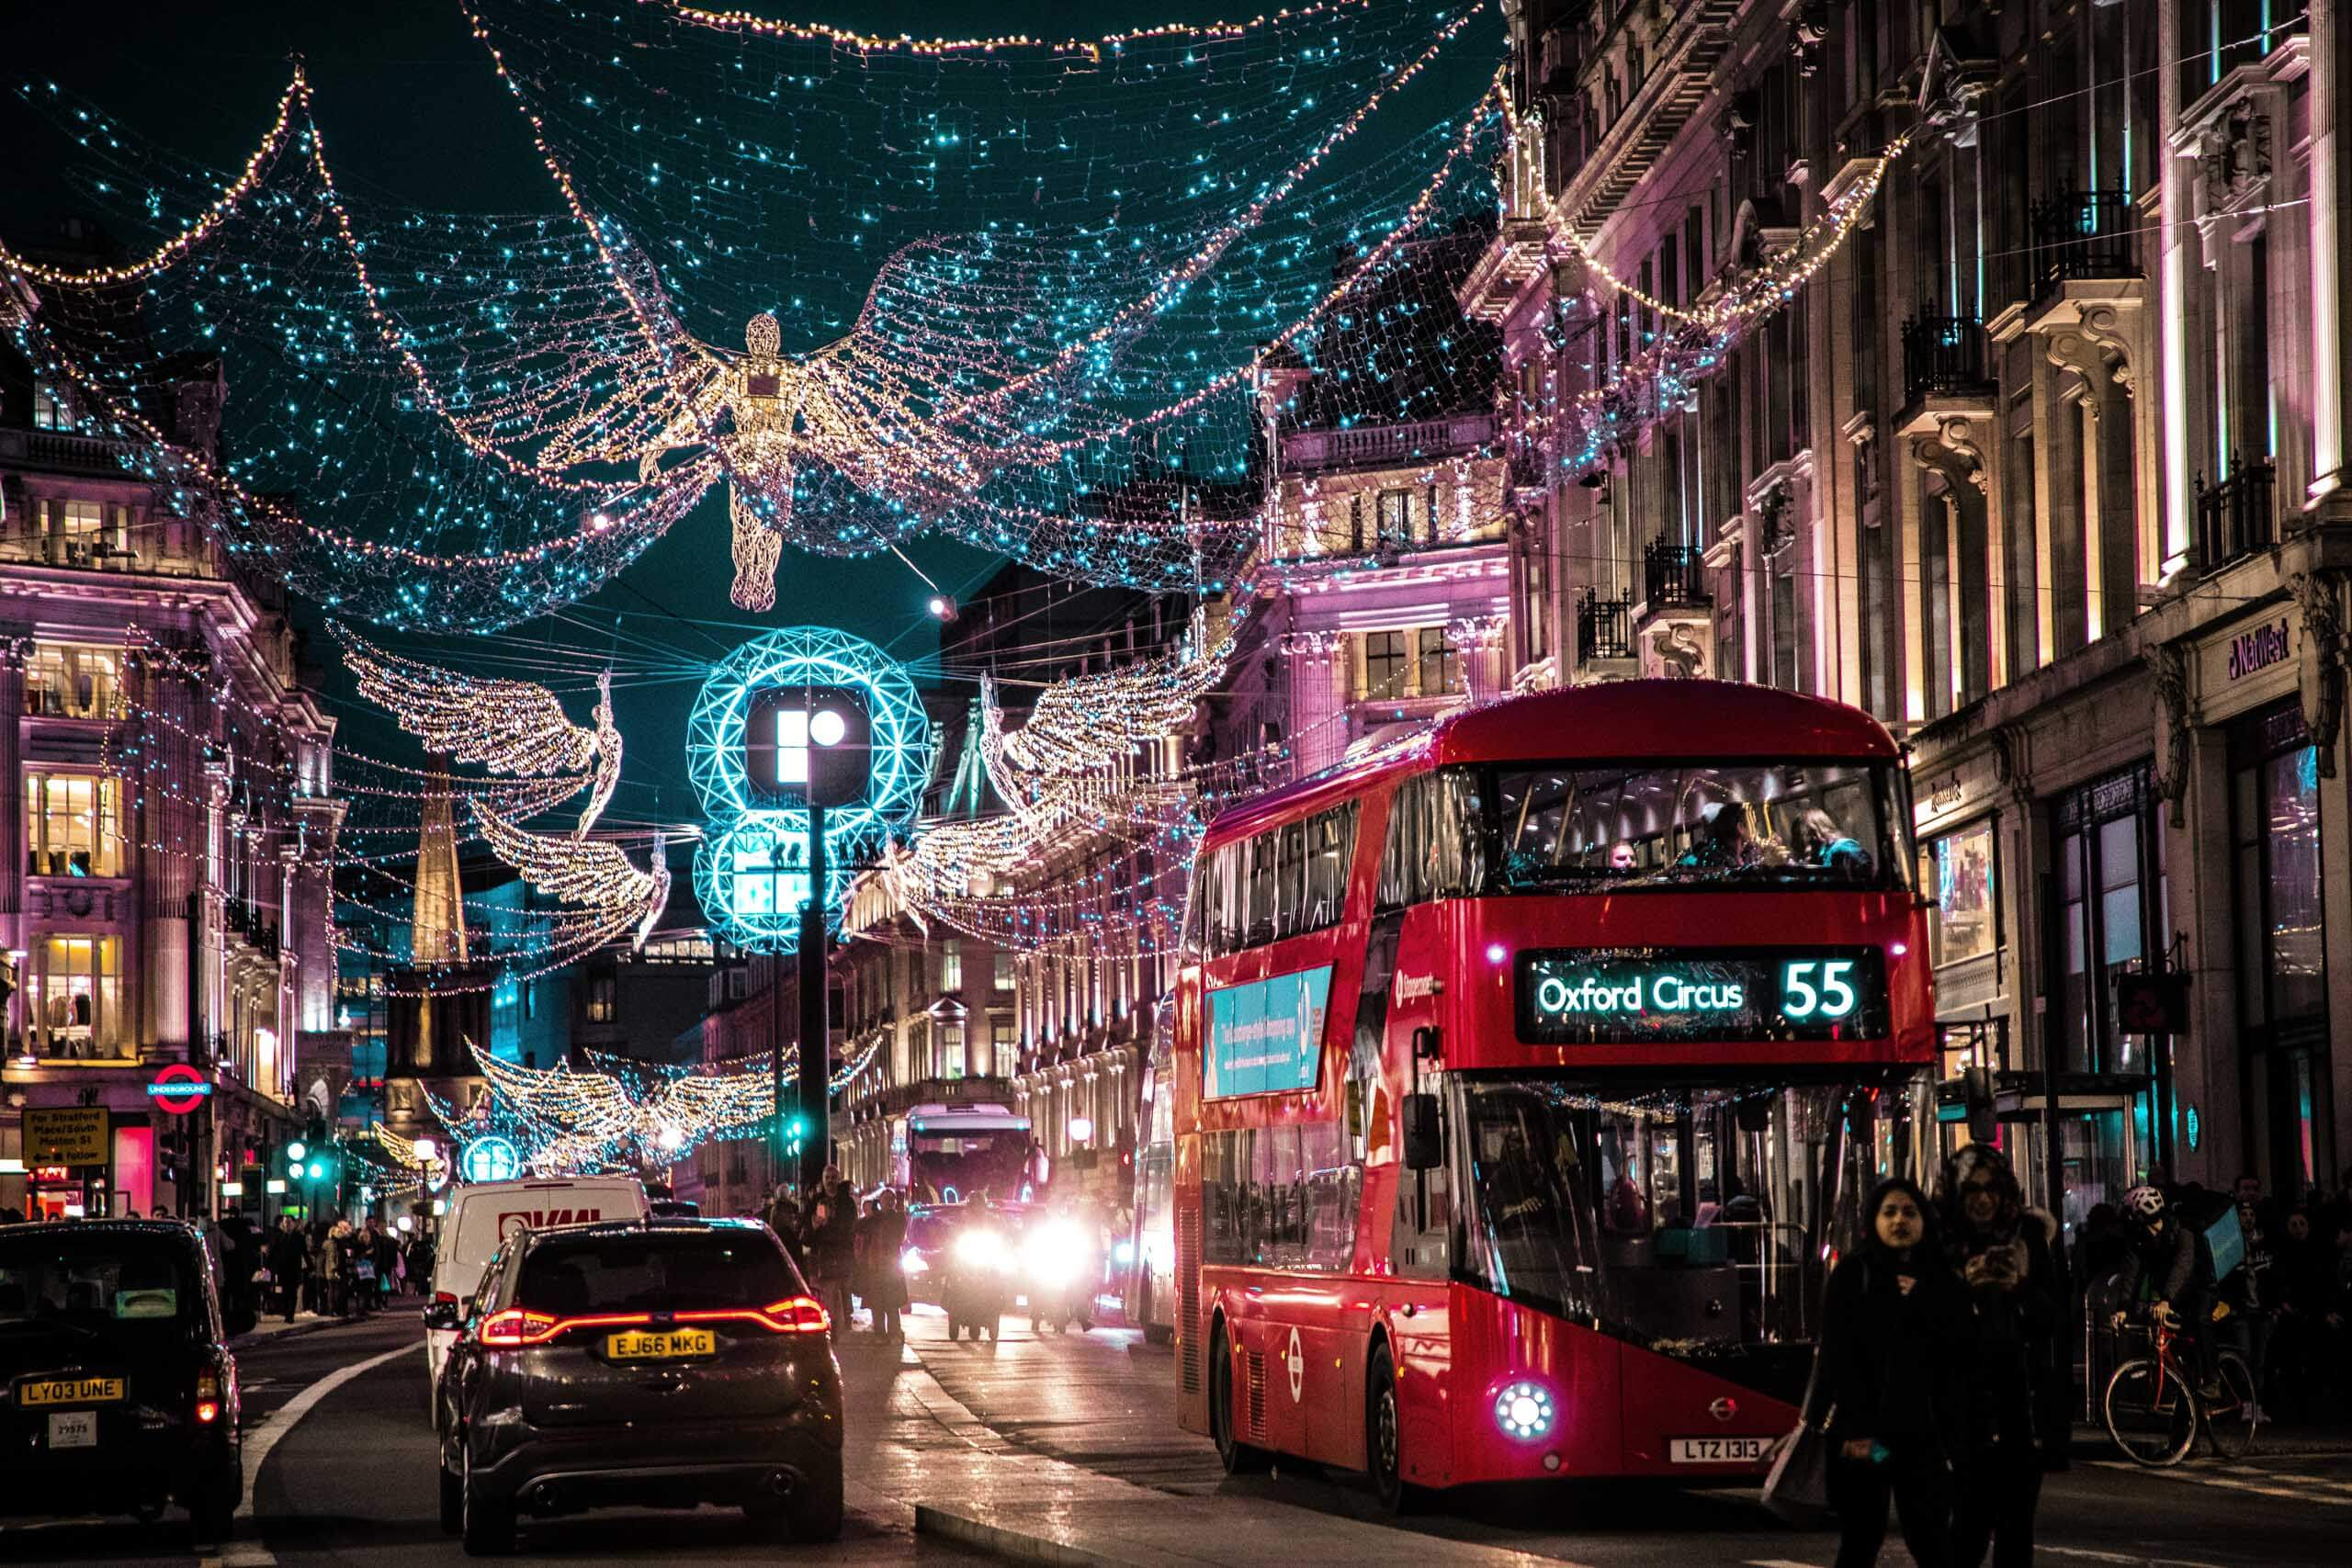 Regent Street in London at Christmas time. Photo by Jamie Davies on Unsplash